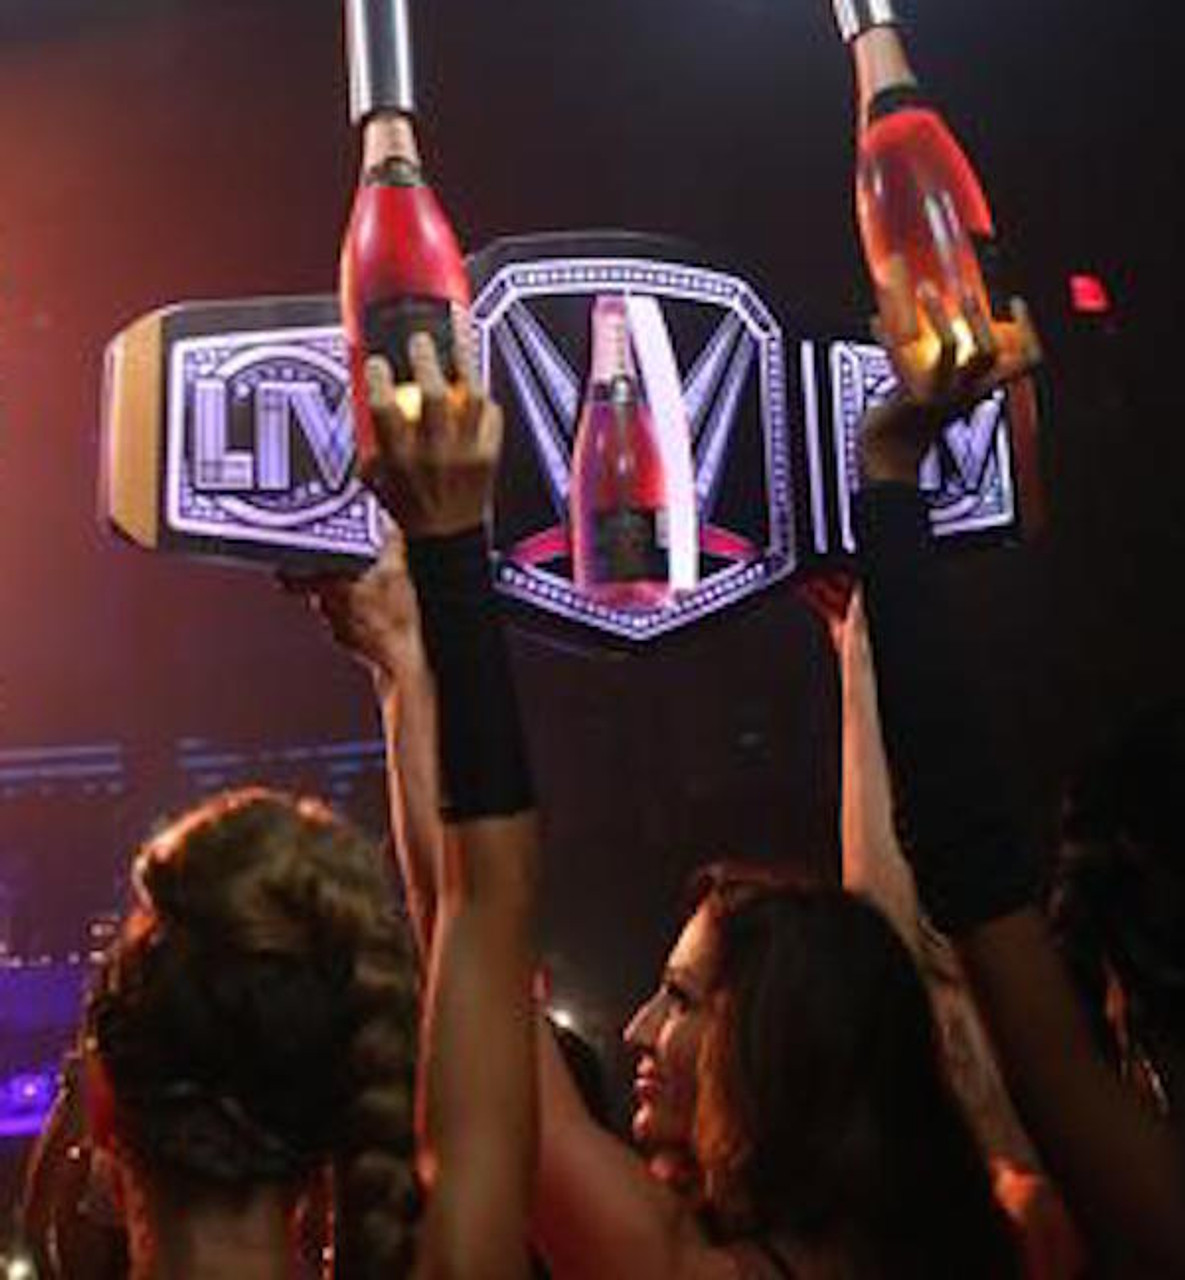 LIV, Bottle,Bottle Wars, VIP, LED, Championship,Title,Belt,Bottle,Service,Presenter